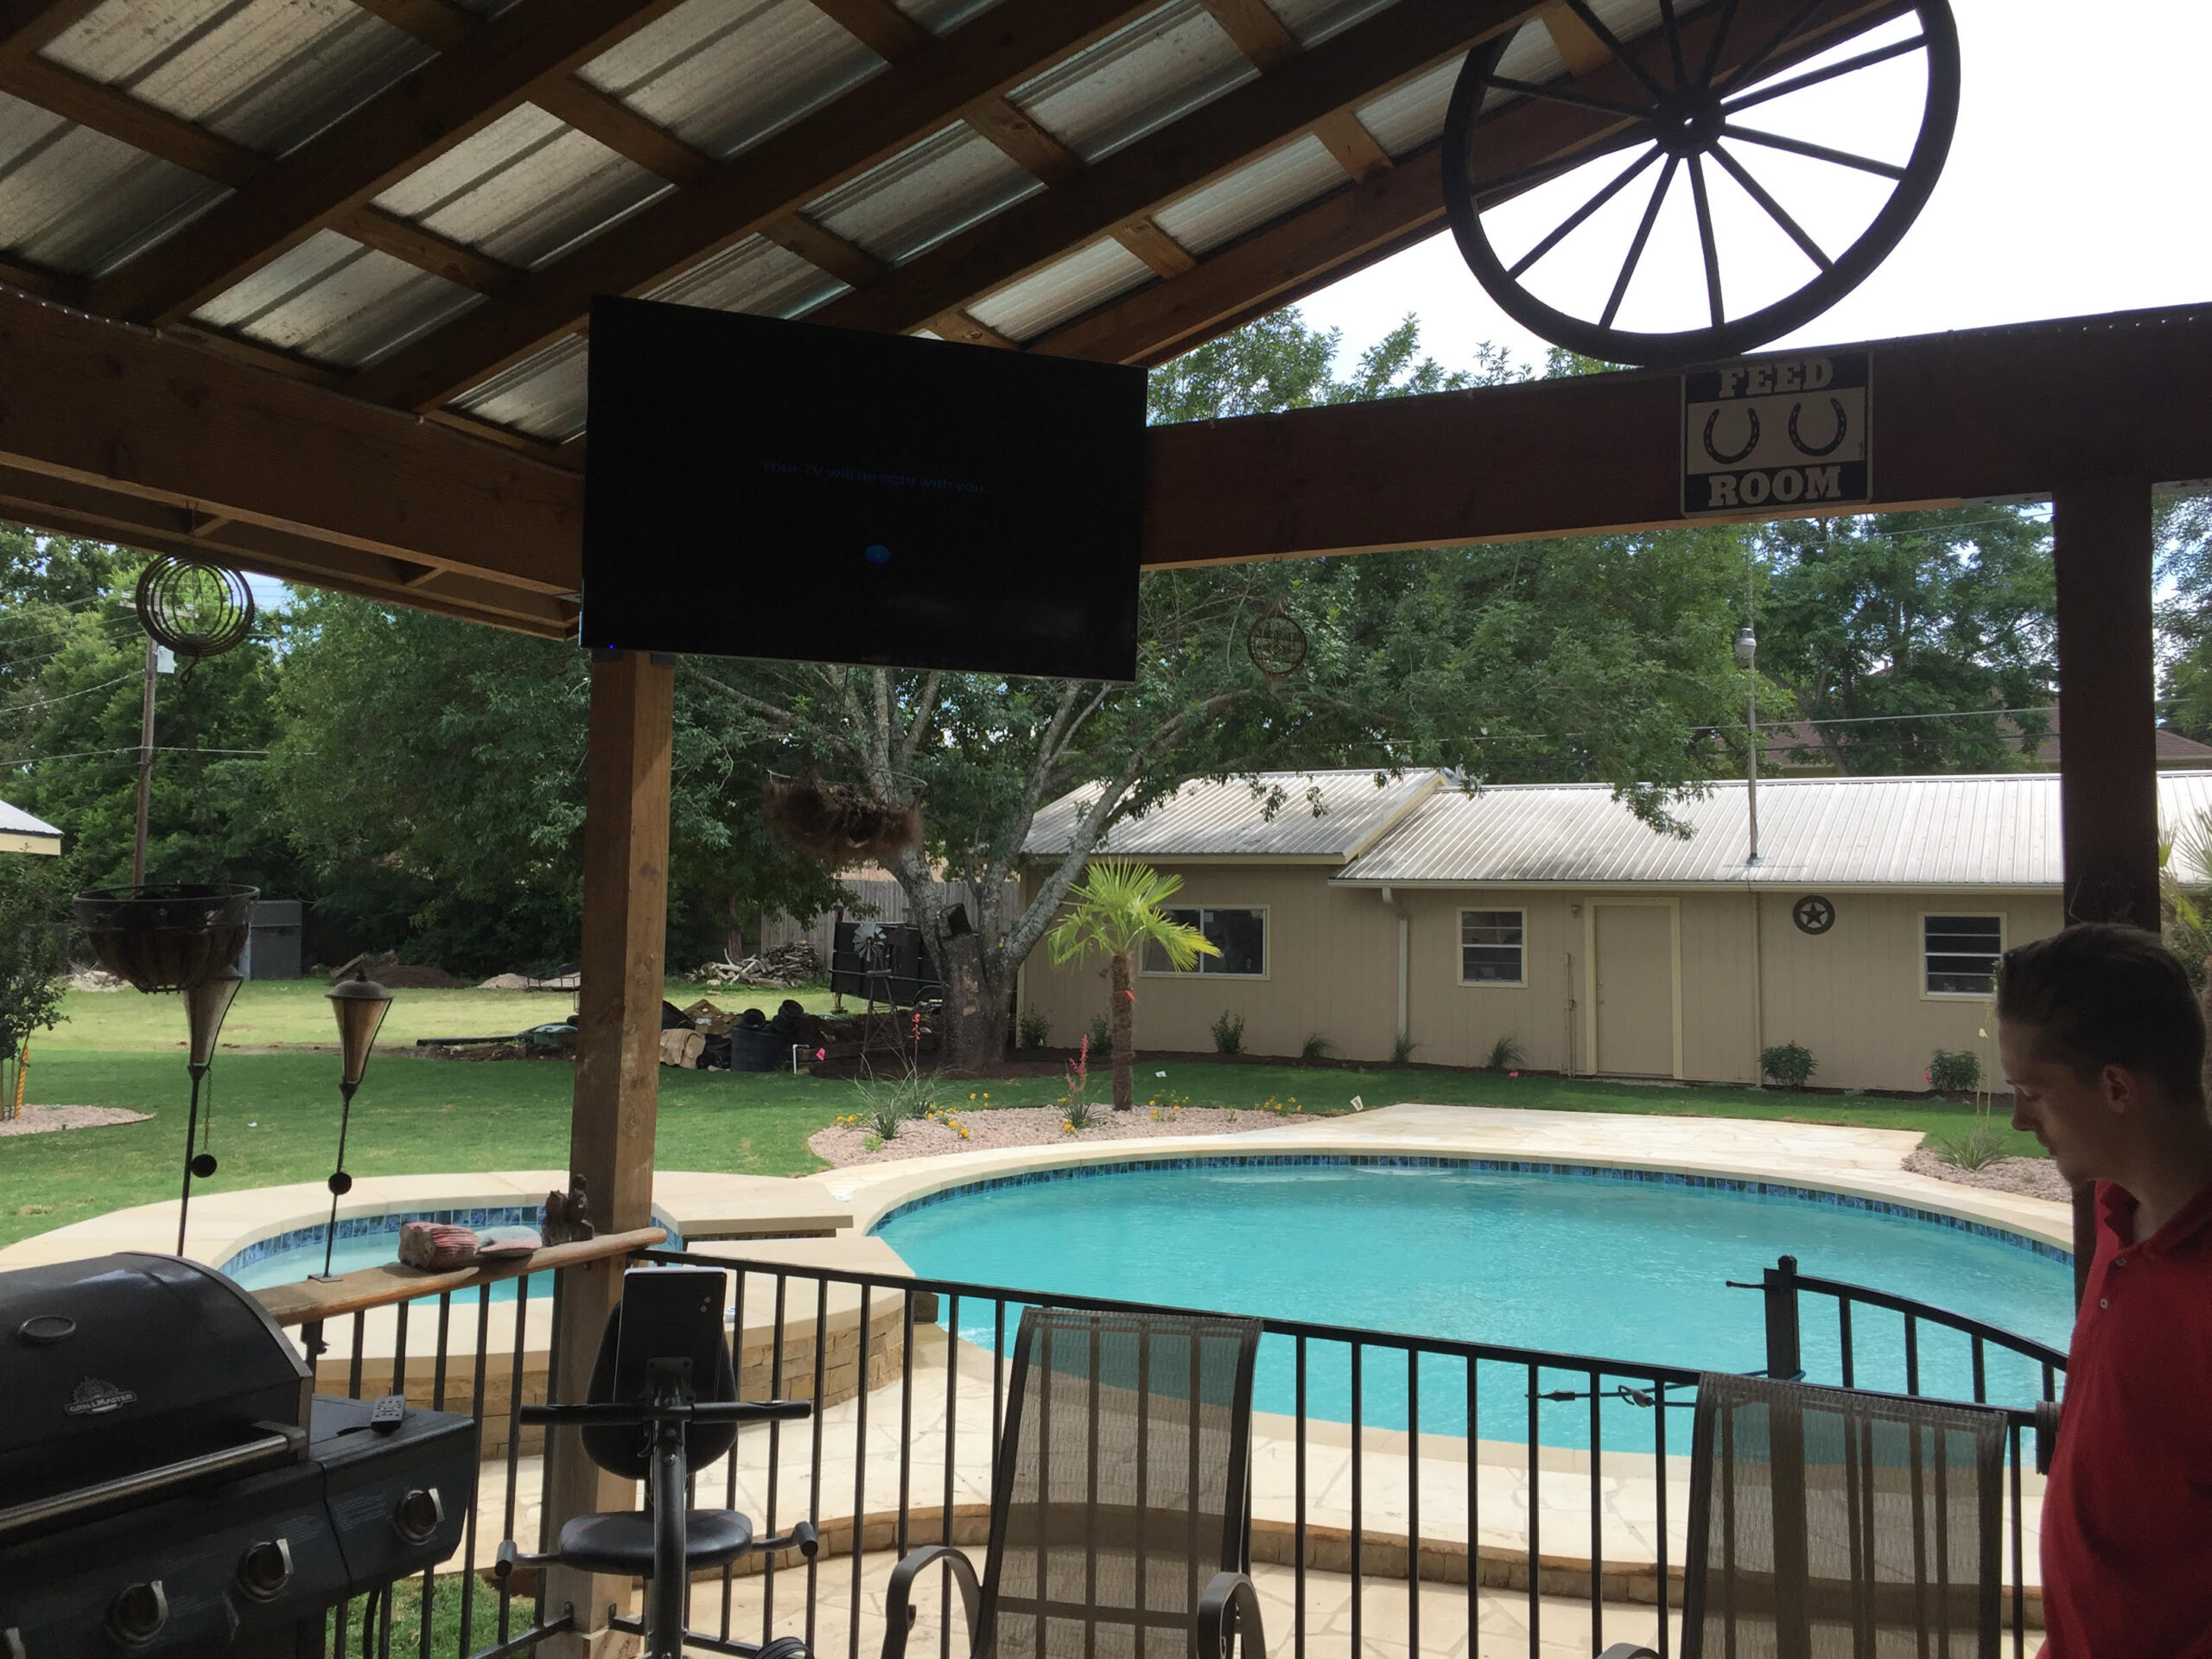 Outdoor space with mounted TV and sound system controlled from smart source